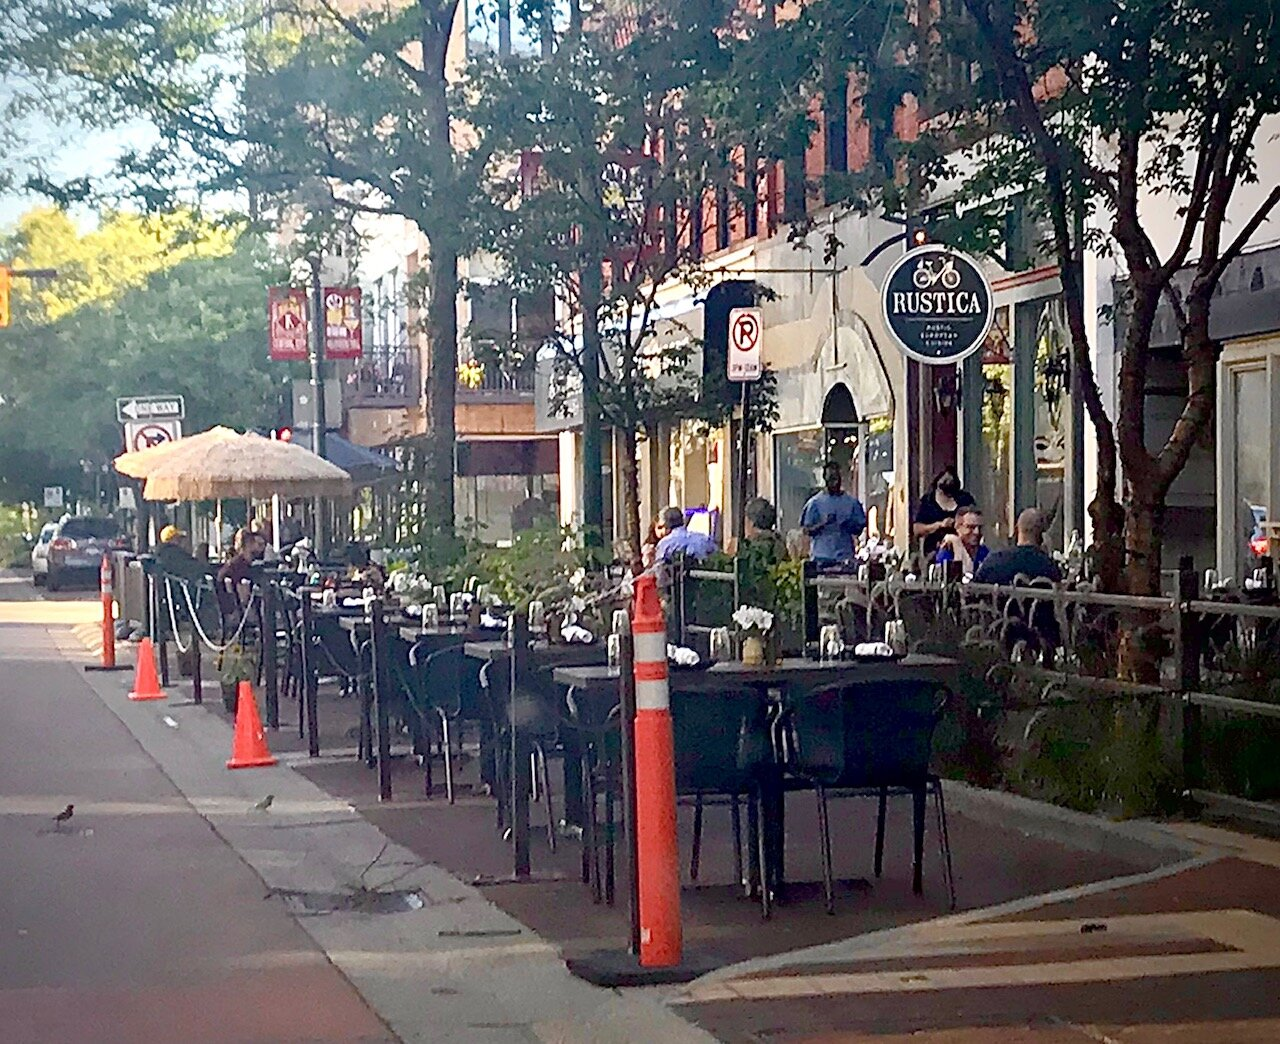 Shown here is the expanded seating area adjacent to the Rustica and Principal restaurants in the 200 block of the South Kalamazoo Mall.